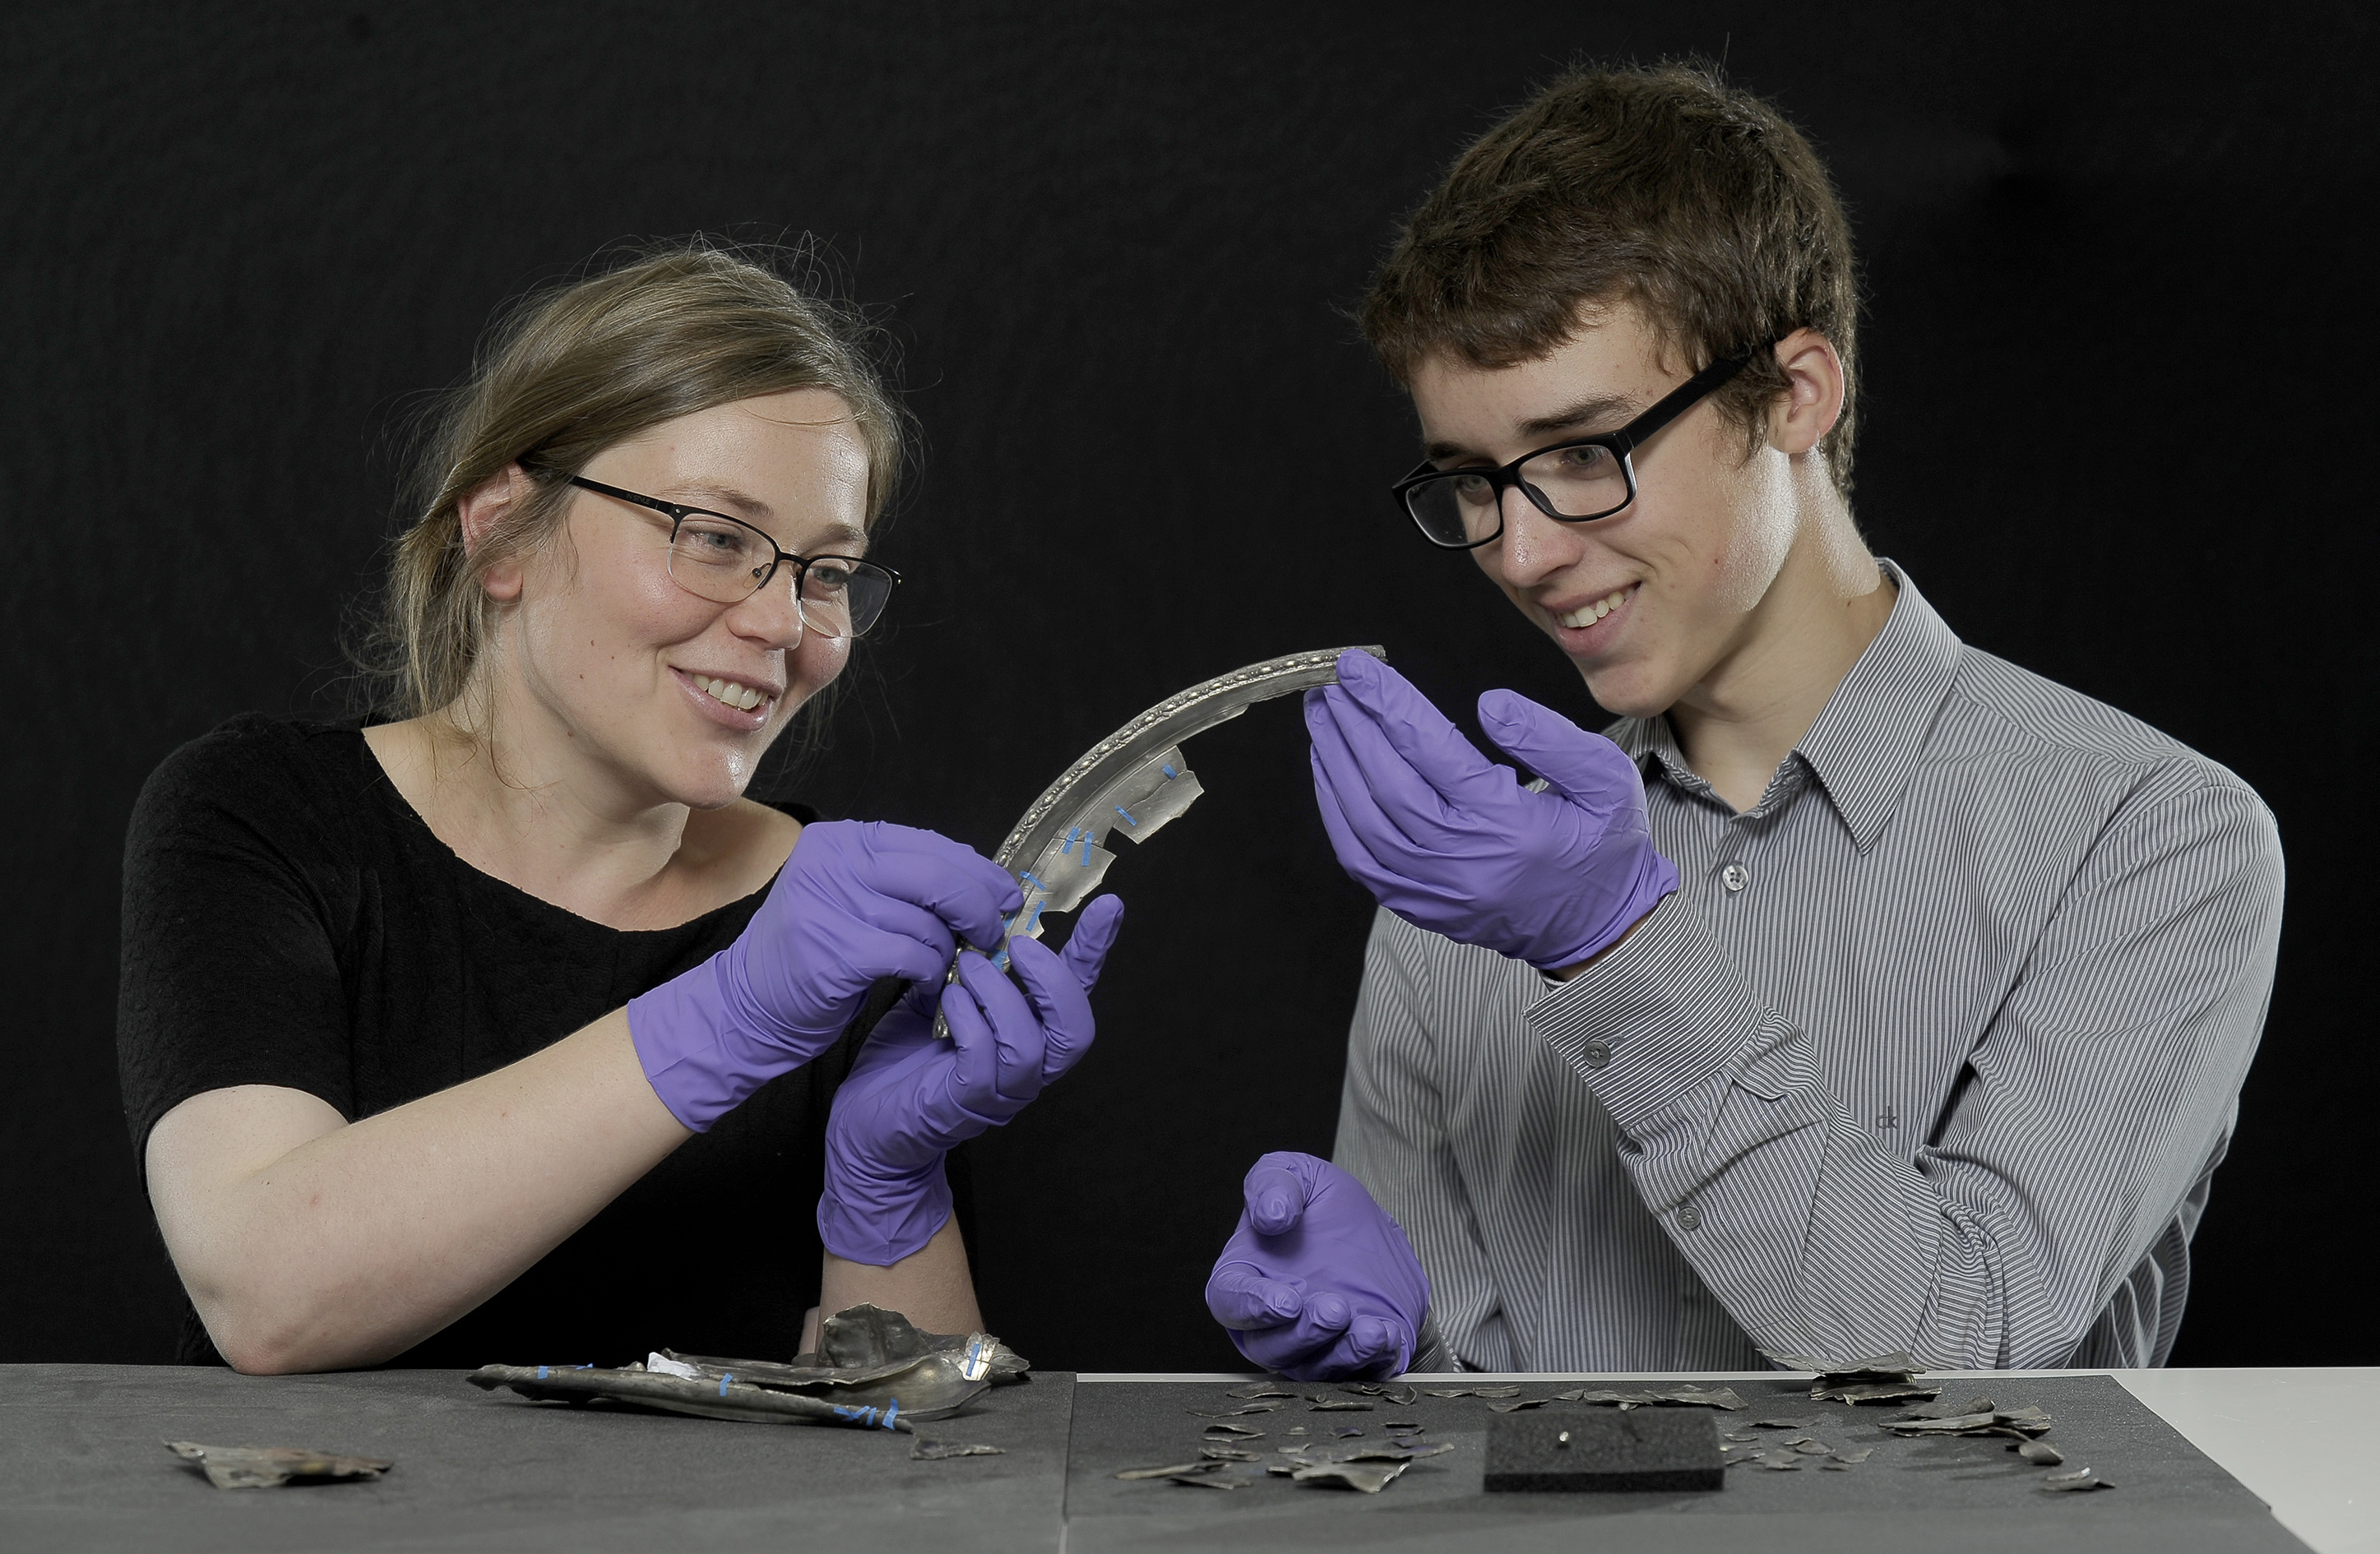 Metal detectorist David Hall, 16, examines the Dairsie Hoard, a hoard of Roman era silver he unearthed in Fife, with Glenmorangie Research Fellow Alice Blackwell of National Museums Scotland.